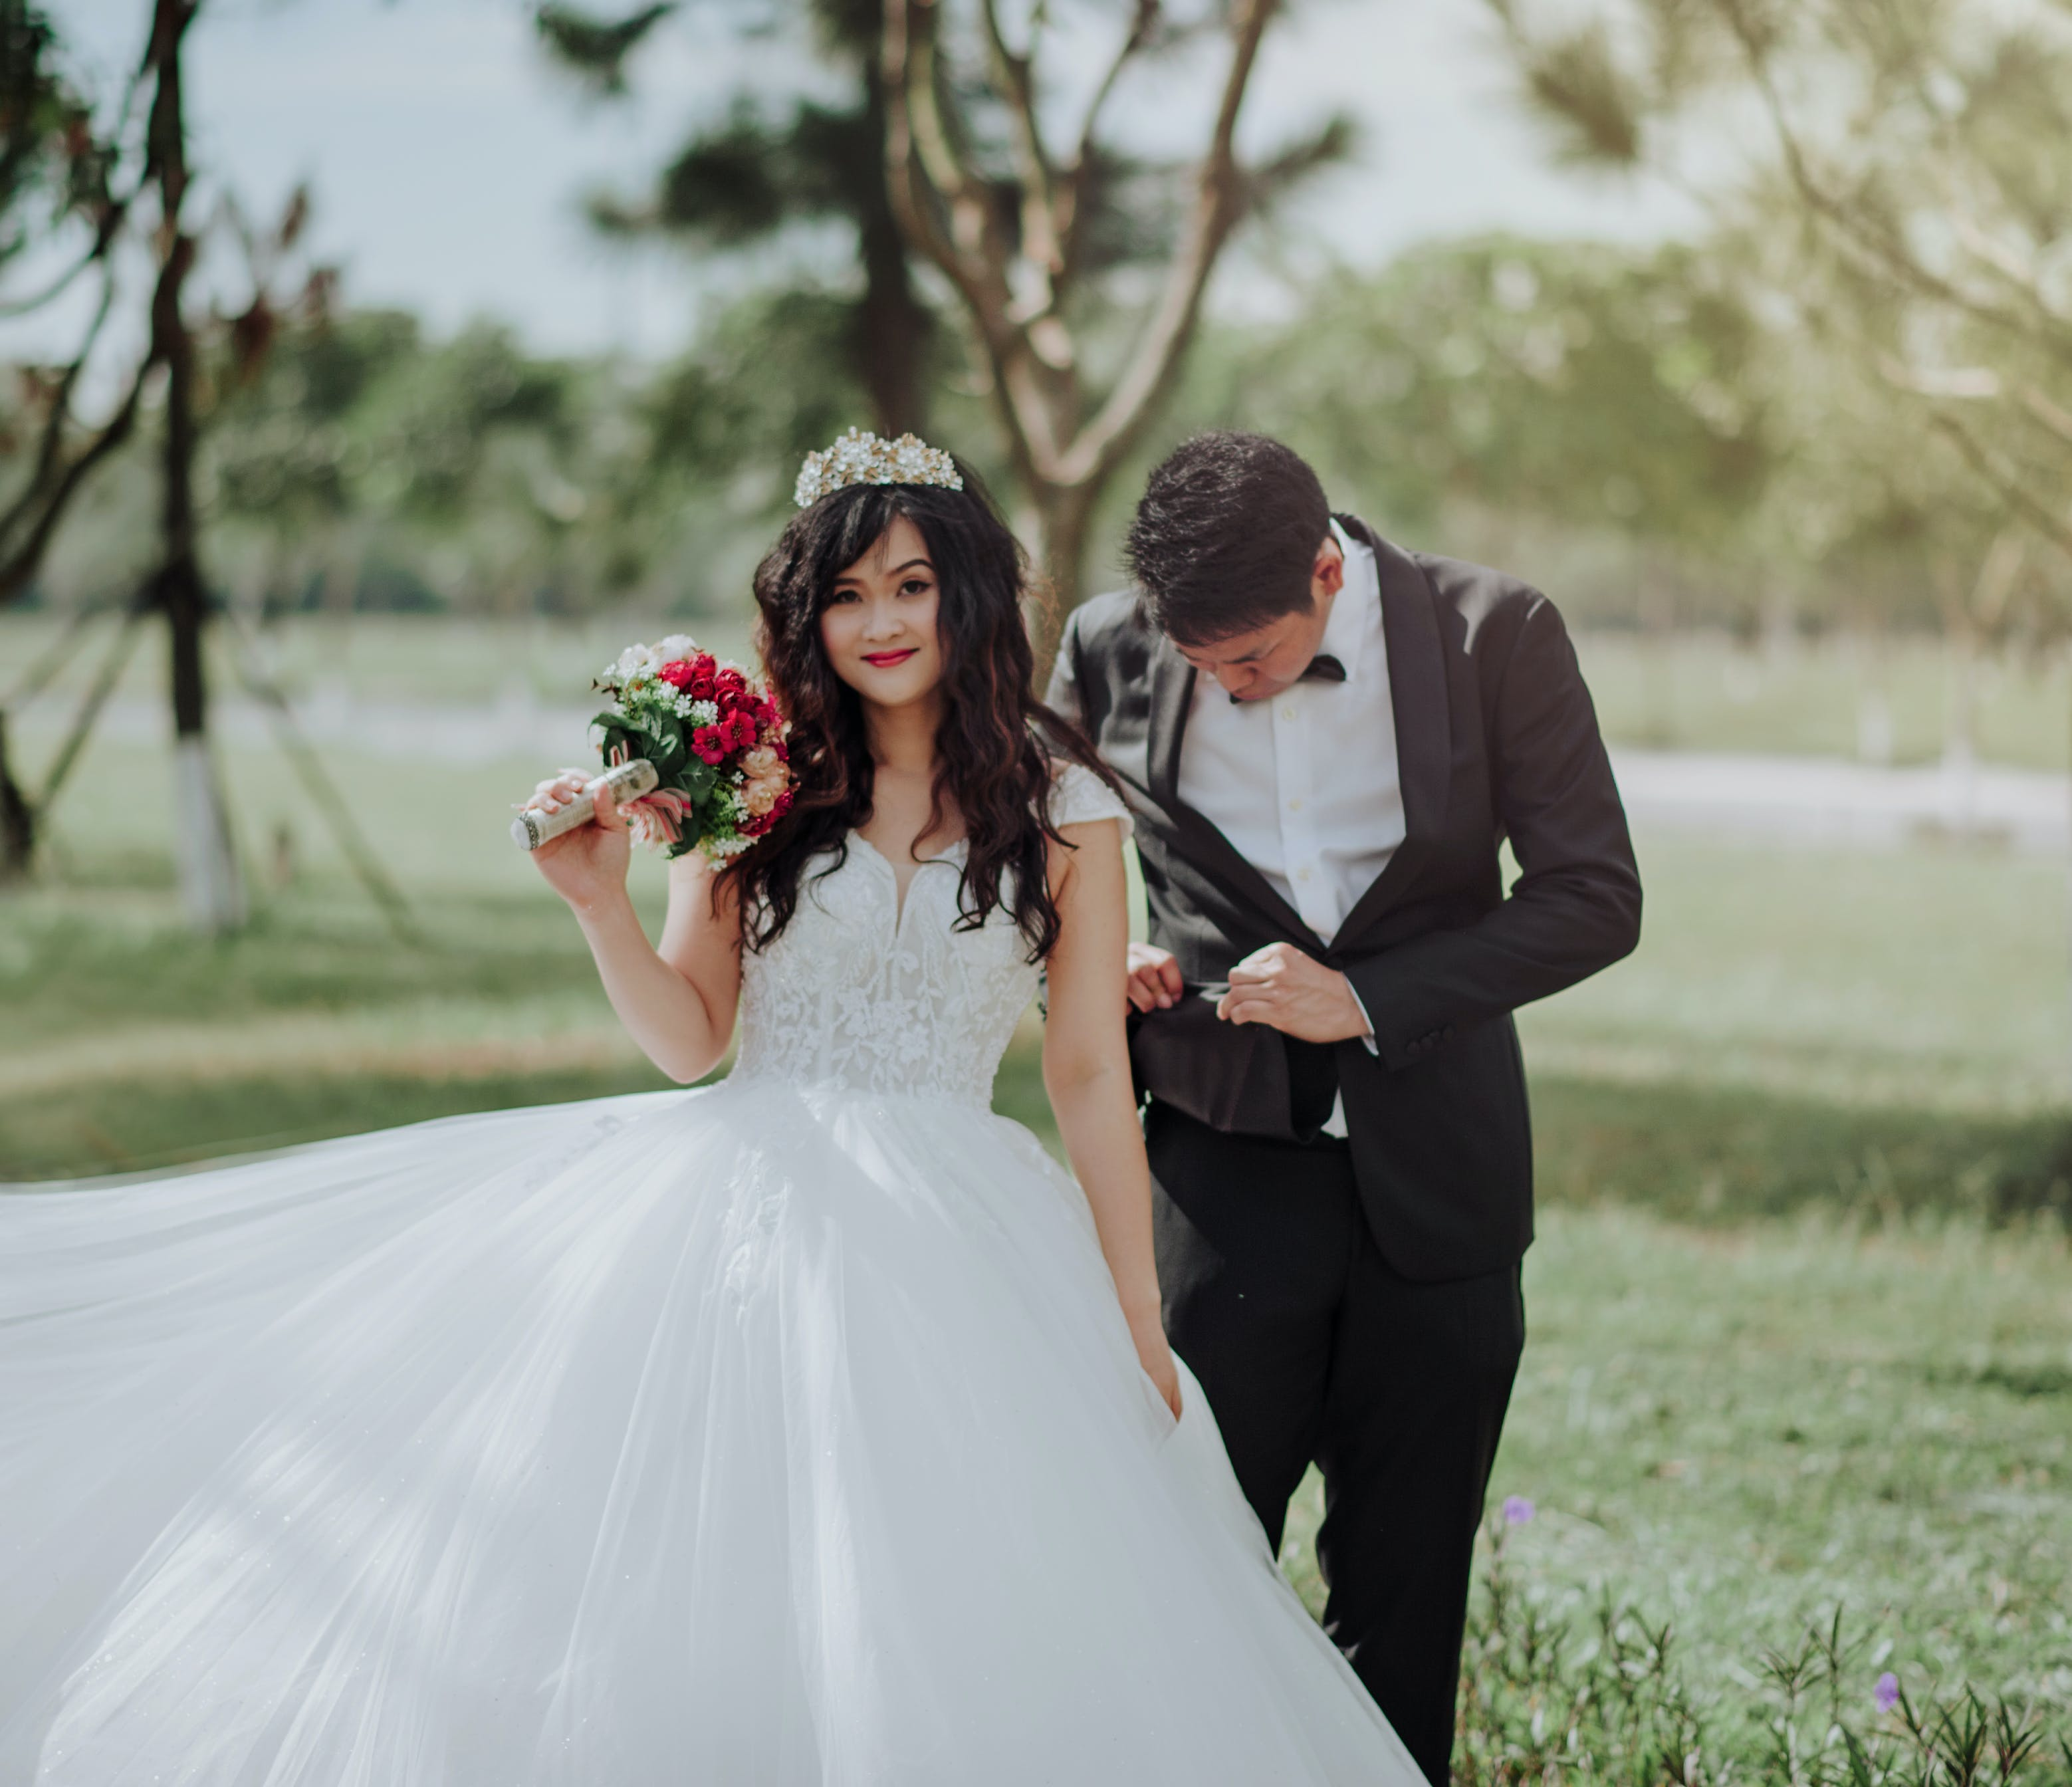 Woman in Wedding Dress Holding Flower With Man in Black Blazer